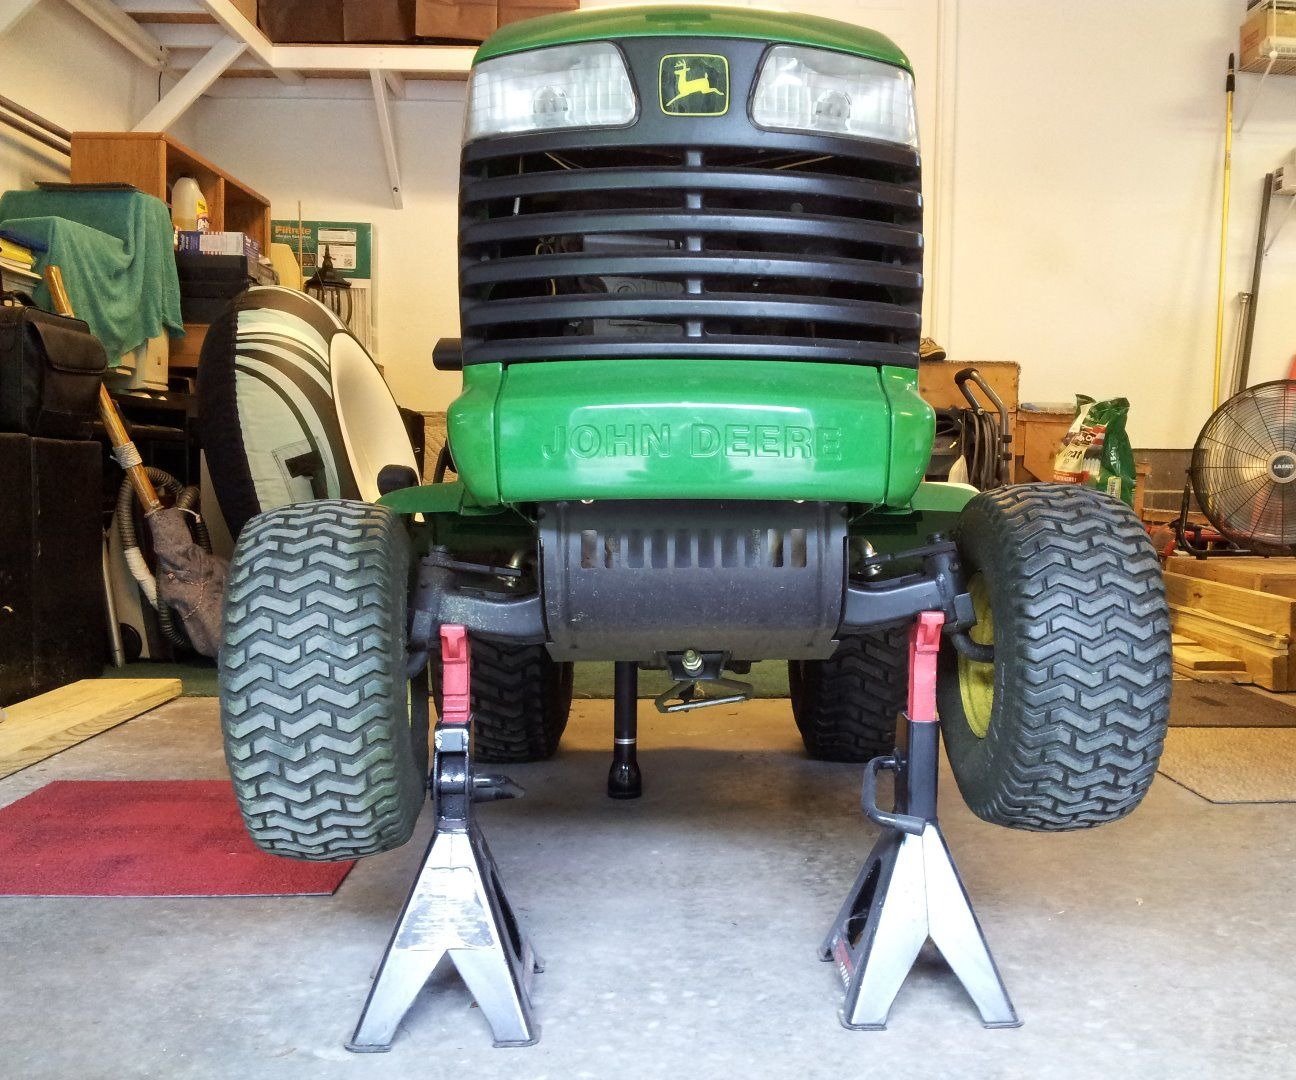 How to Change the Traction Belt on a John Deere LT155: 8 Steps